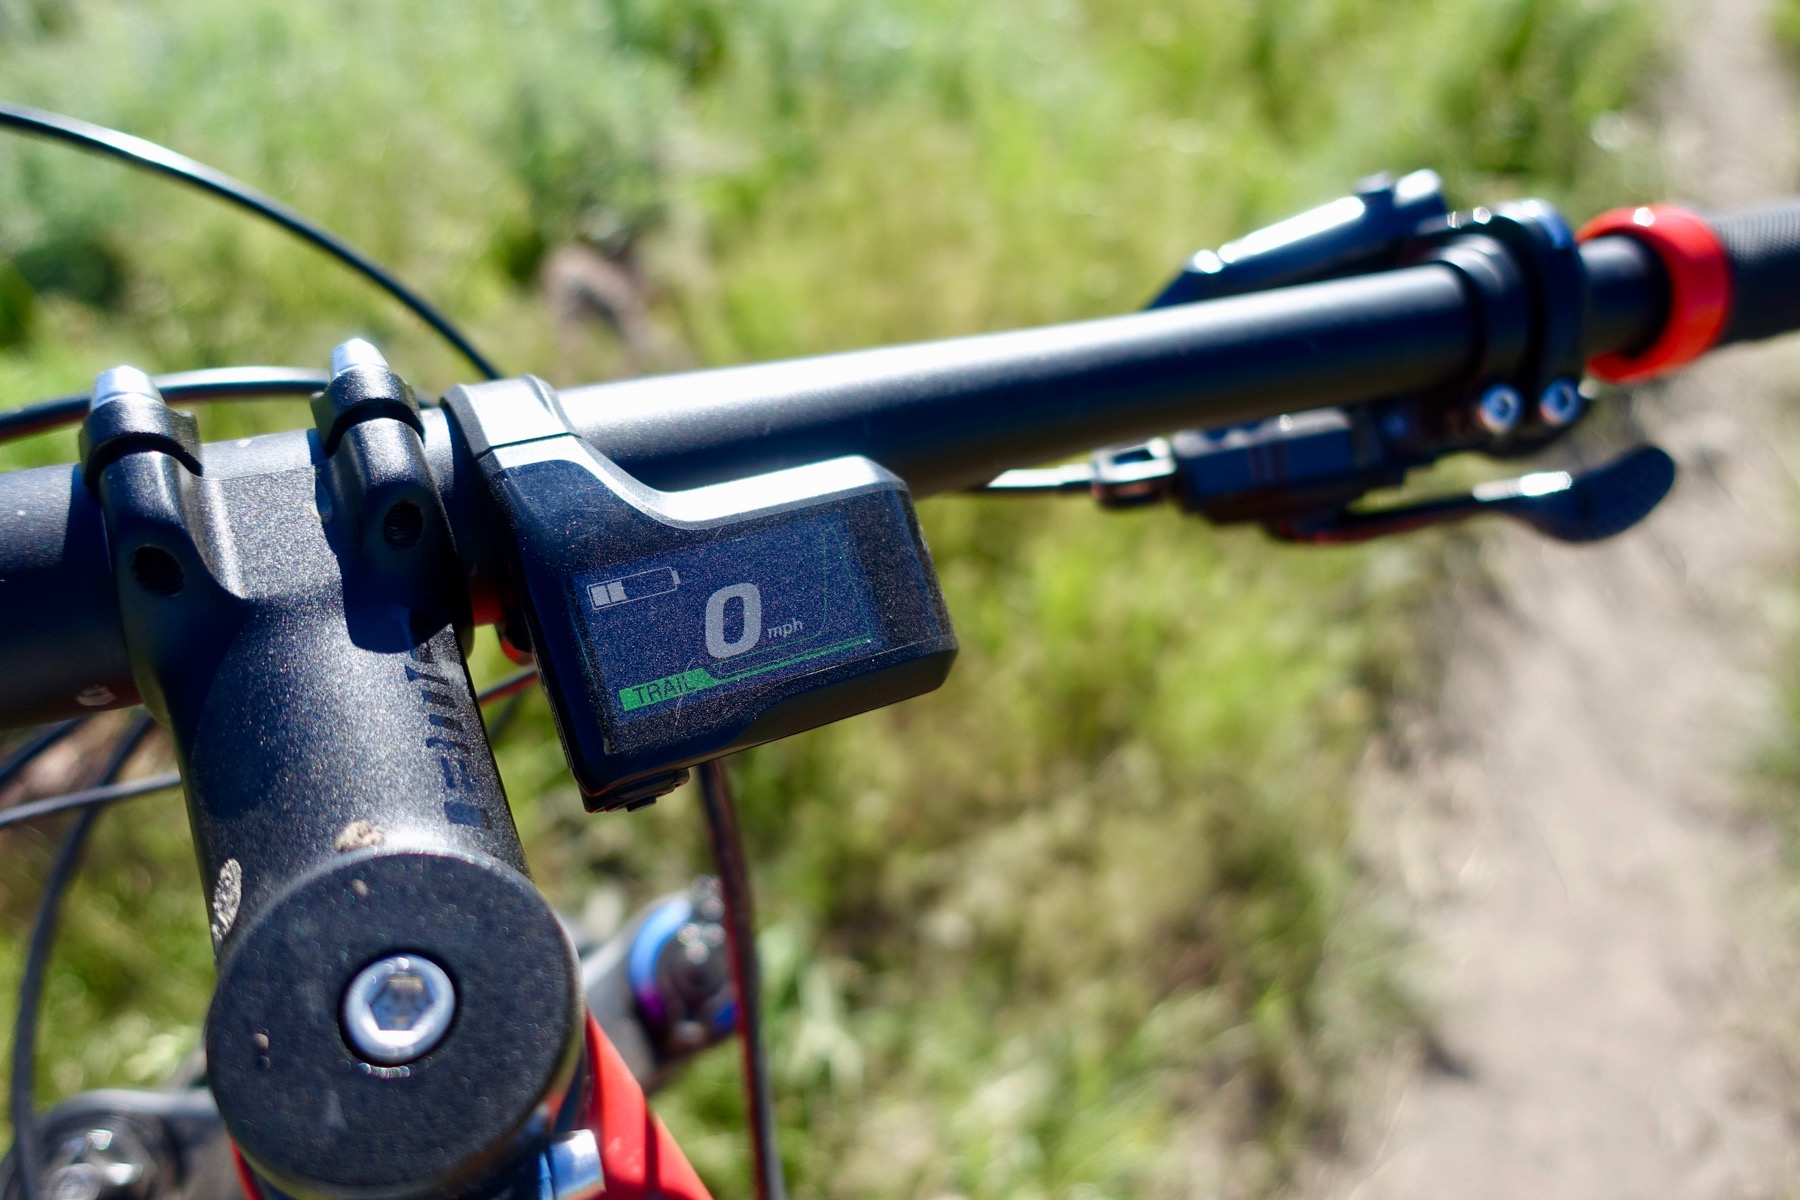 Secretary of Interior Allows E-bike Access Across BLM Land, National Parks - Singletracks Mountain Bike News